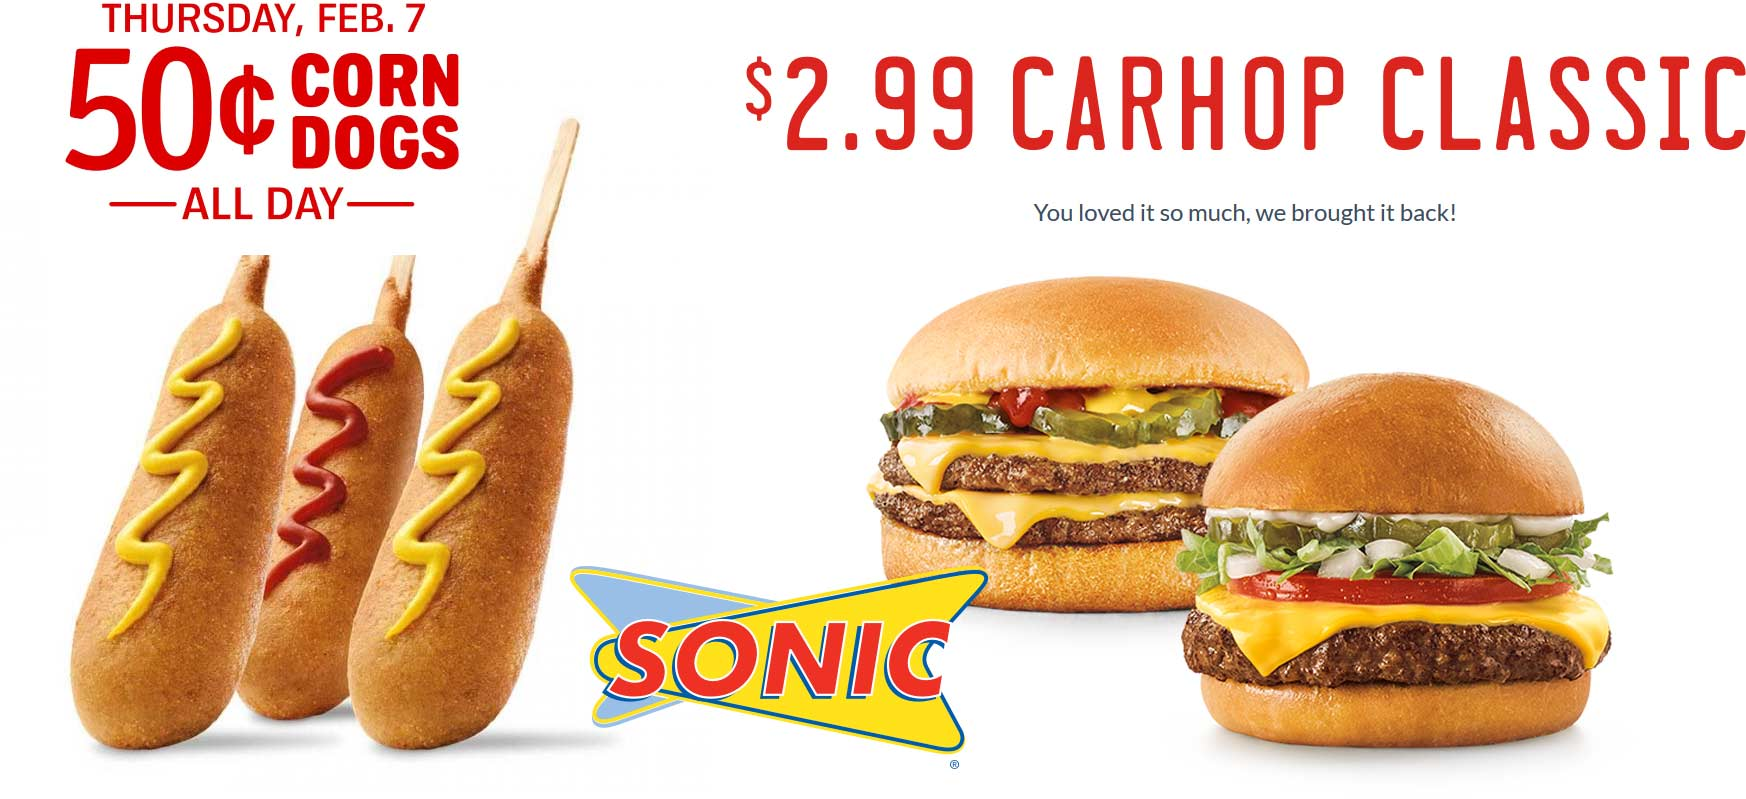 Sonic Drive-In Coupon October 2019 .50 cent corn dogs today at Sonic Drive-In restaurants